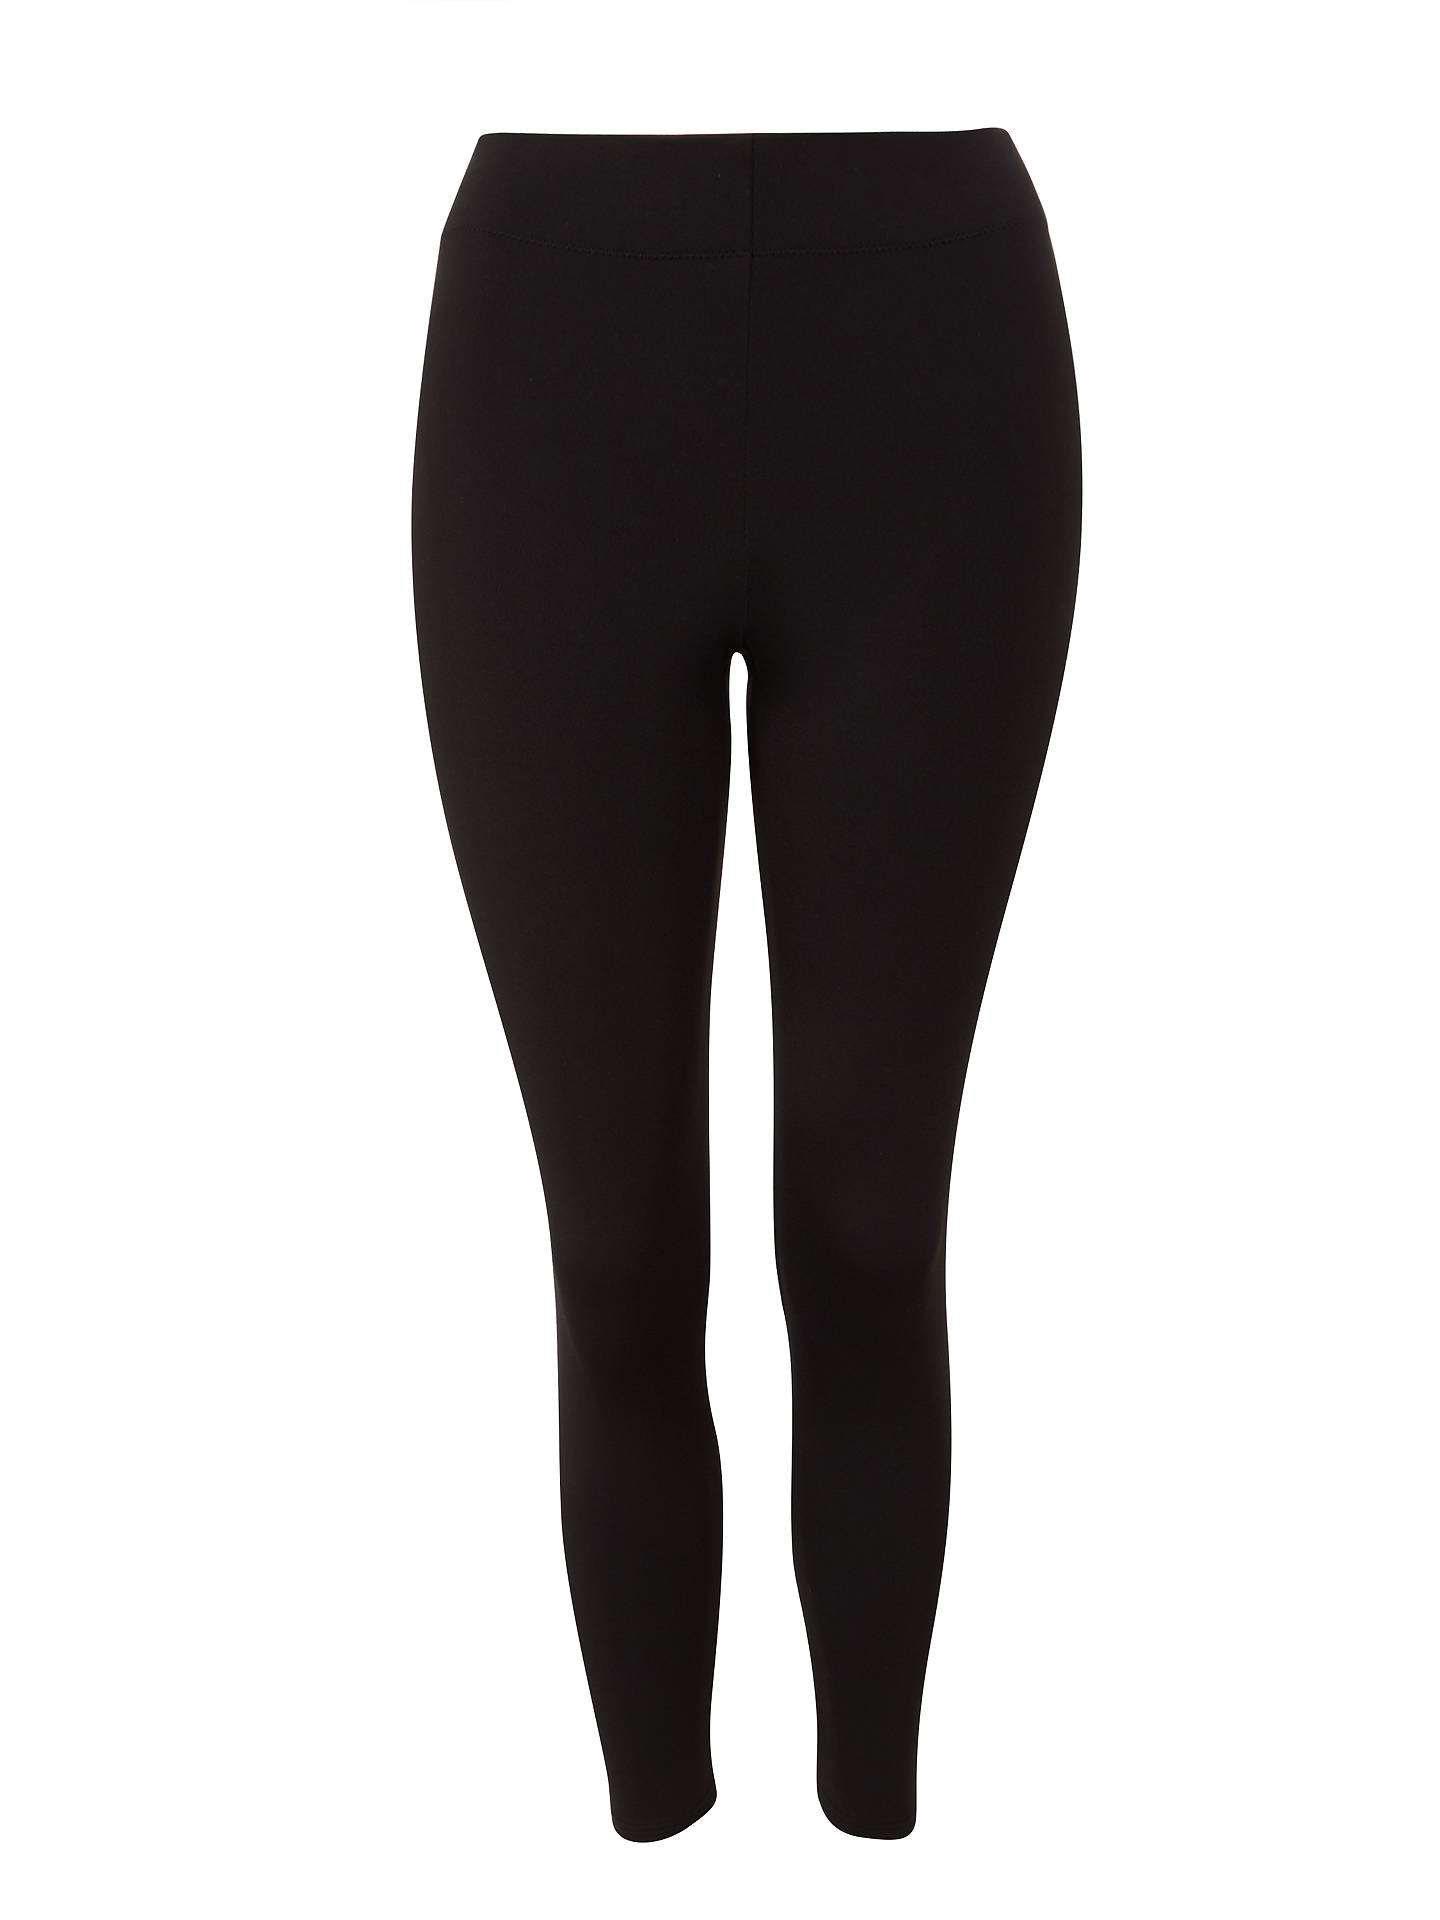 Buy Maidenform Firm Control Leggings, Black, XL Online at johnlewis.com